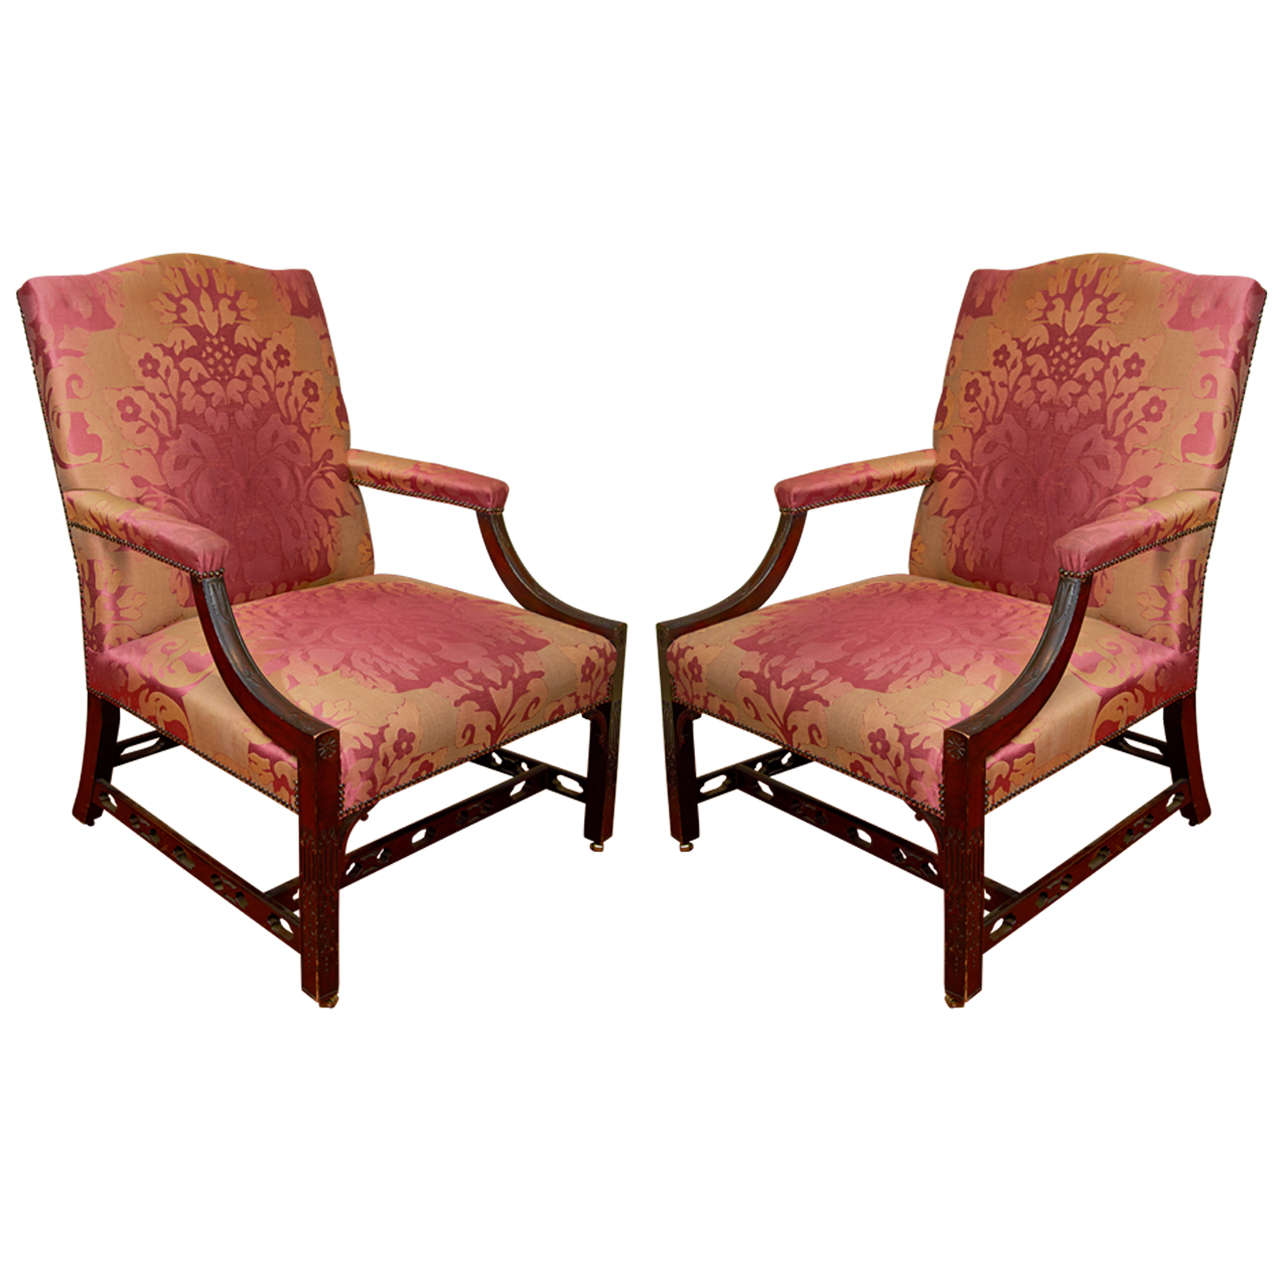 Pair of 18th Century Upholstered Gainsborough Armchairs